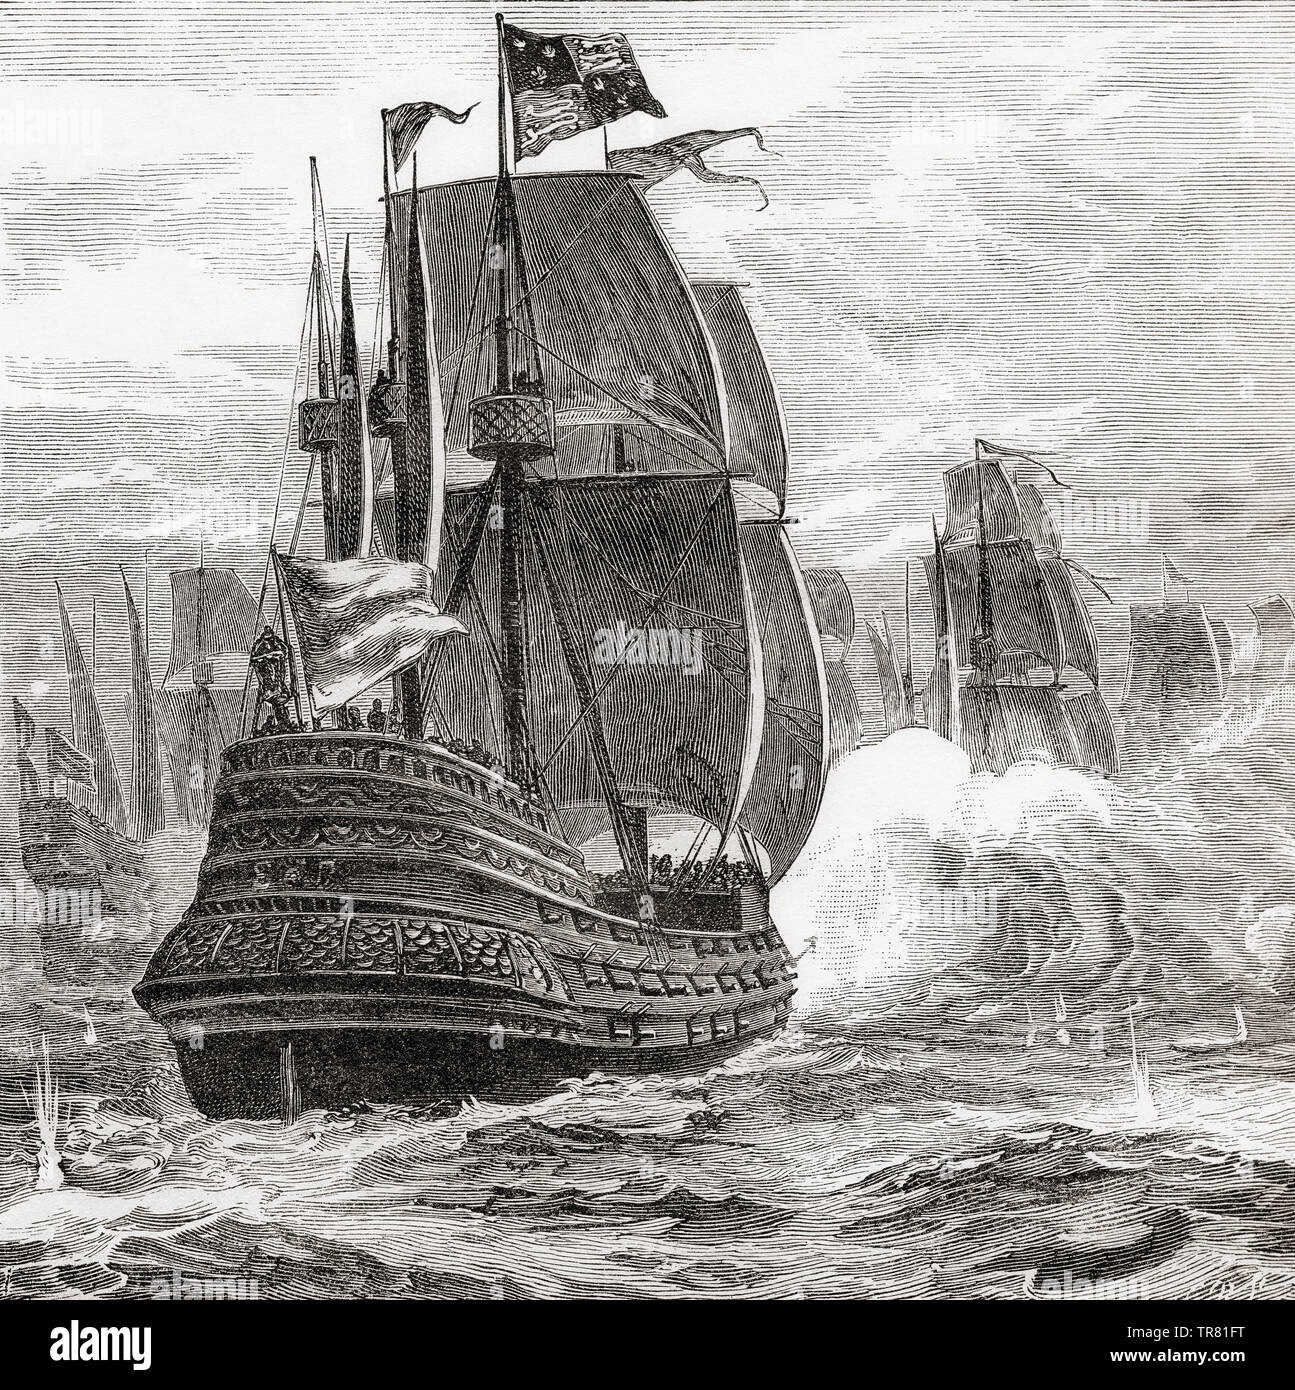 A 19th century ship of the line with three running gun batteries from stern to prow.  From La Ilustracion Iberica, published 1884. Stock Photo